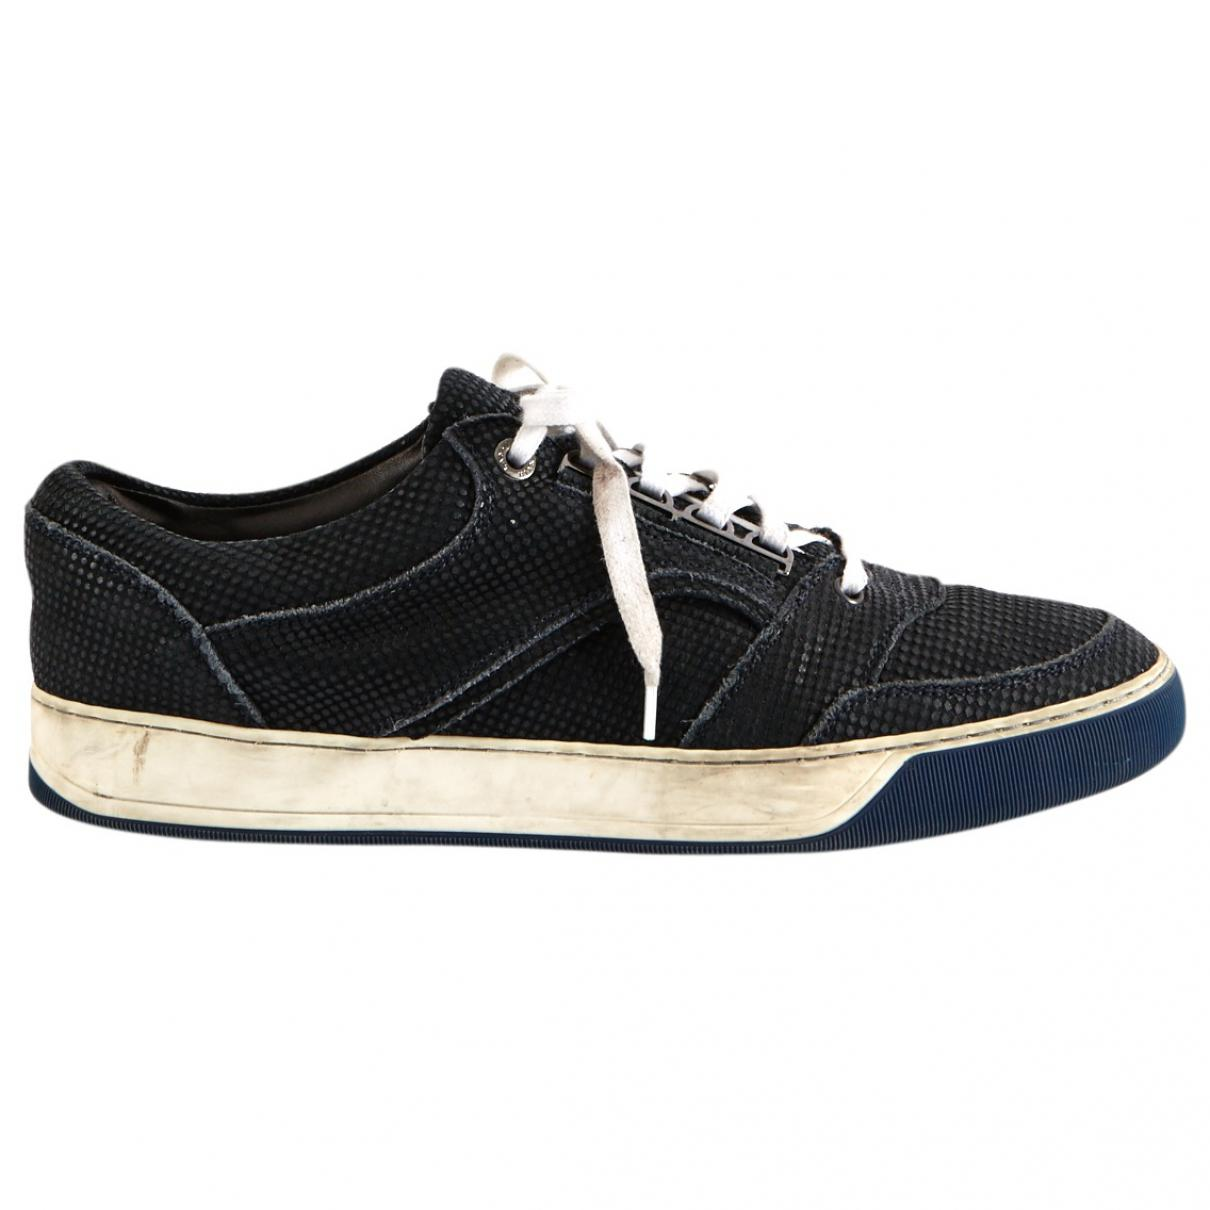 Pre-owned - LOW-TOP SNEAKERS Lanvin XzOhgg